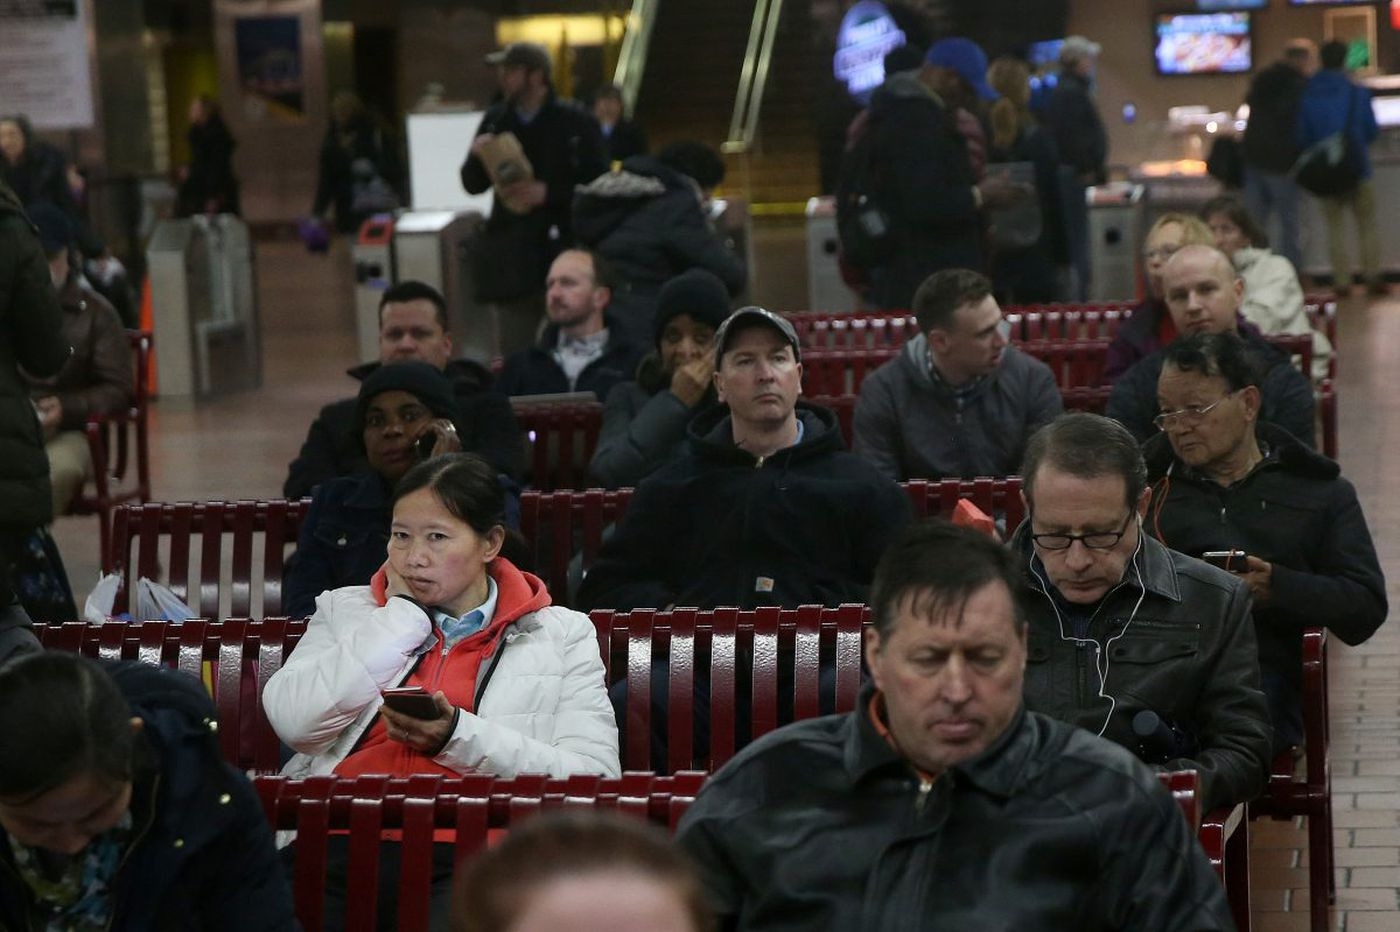 Philly commuters stranded as storm causes transportation woes